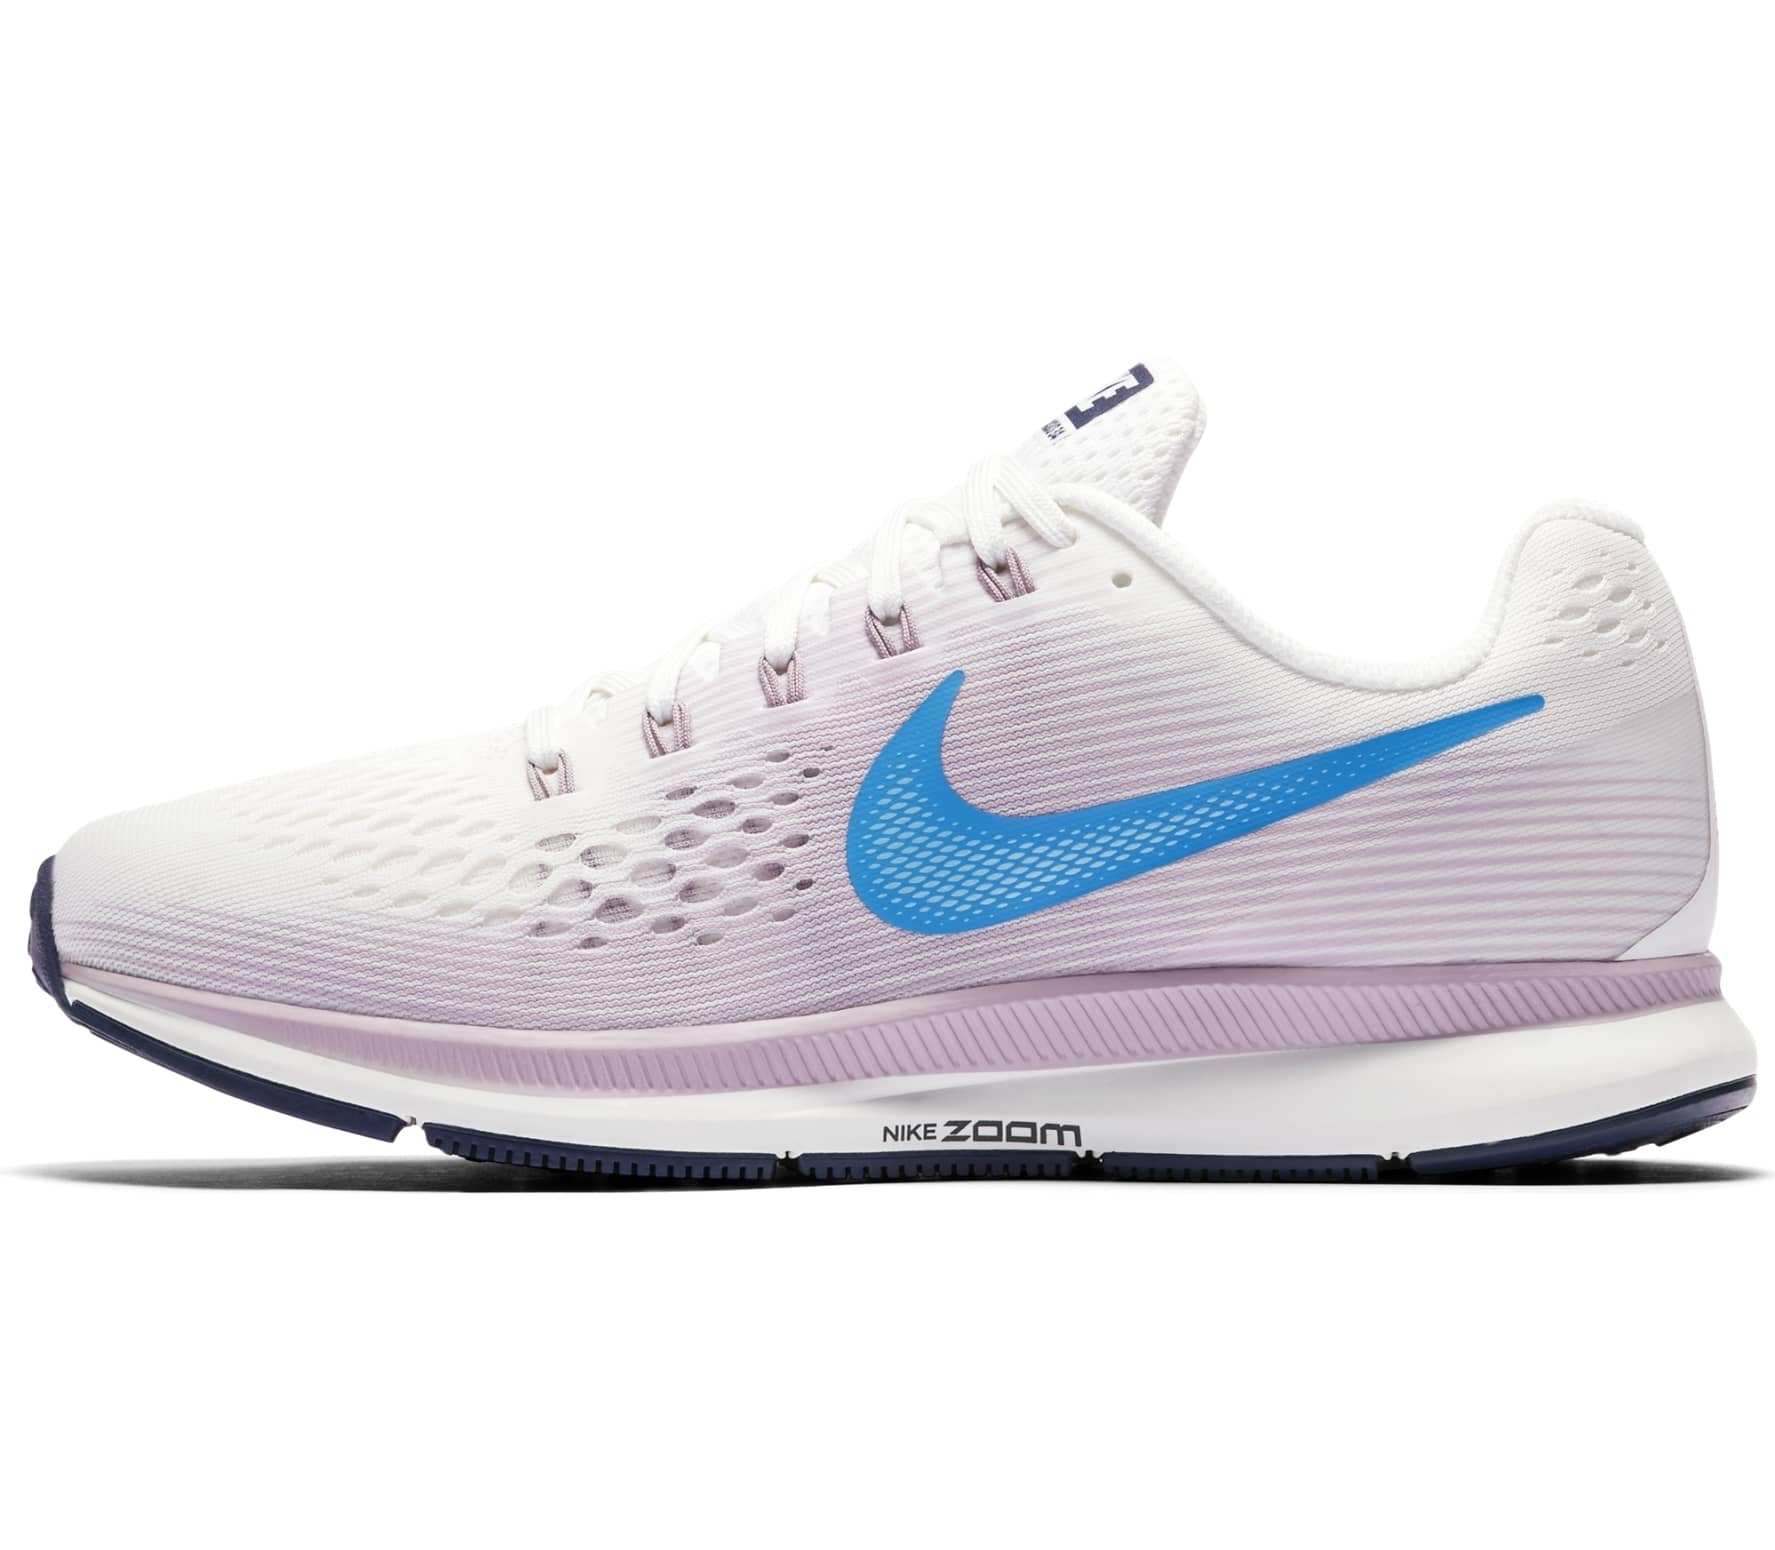 wholesale dealer 2d33a 59d85 Nike - Air Zoom Pegasus 34 women s running shoes (pink blue)